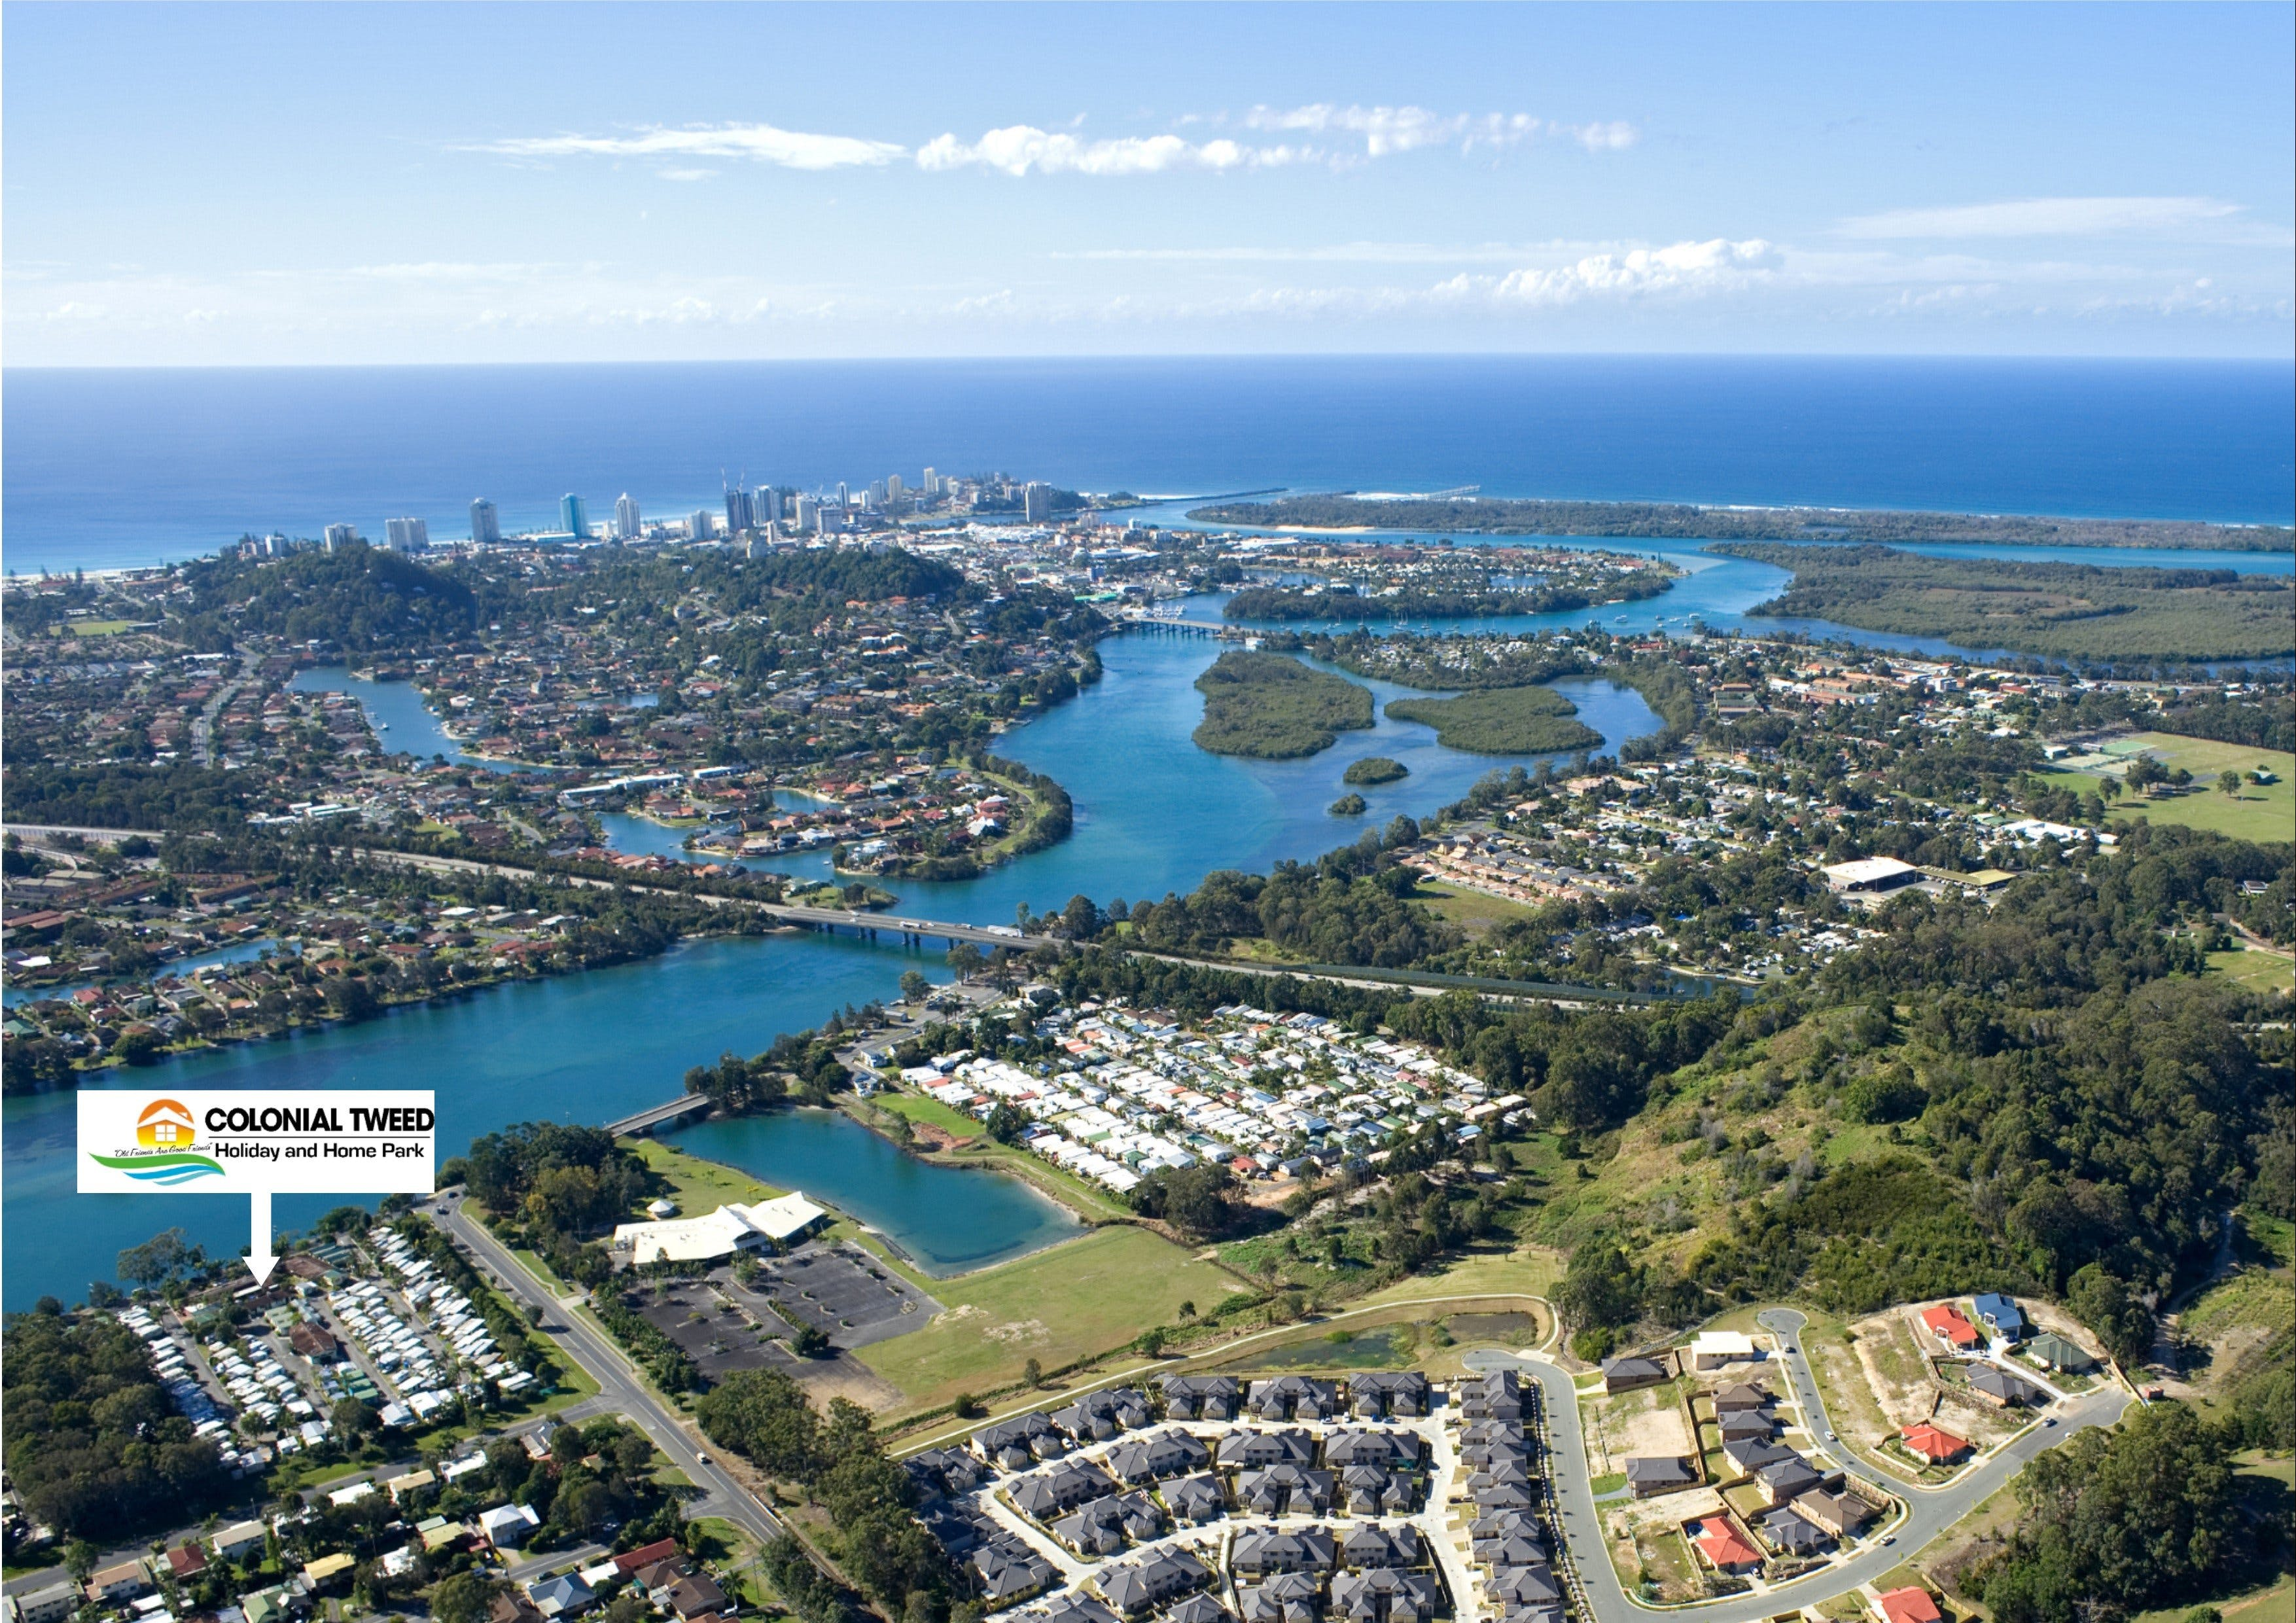 Colonial Tweed Holiday and Home Park - Surfers Gold Coast